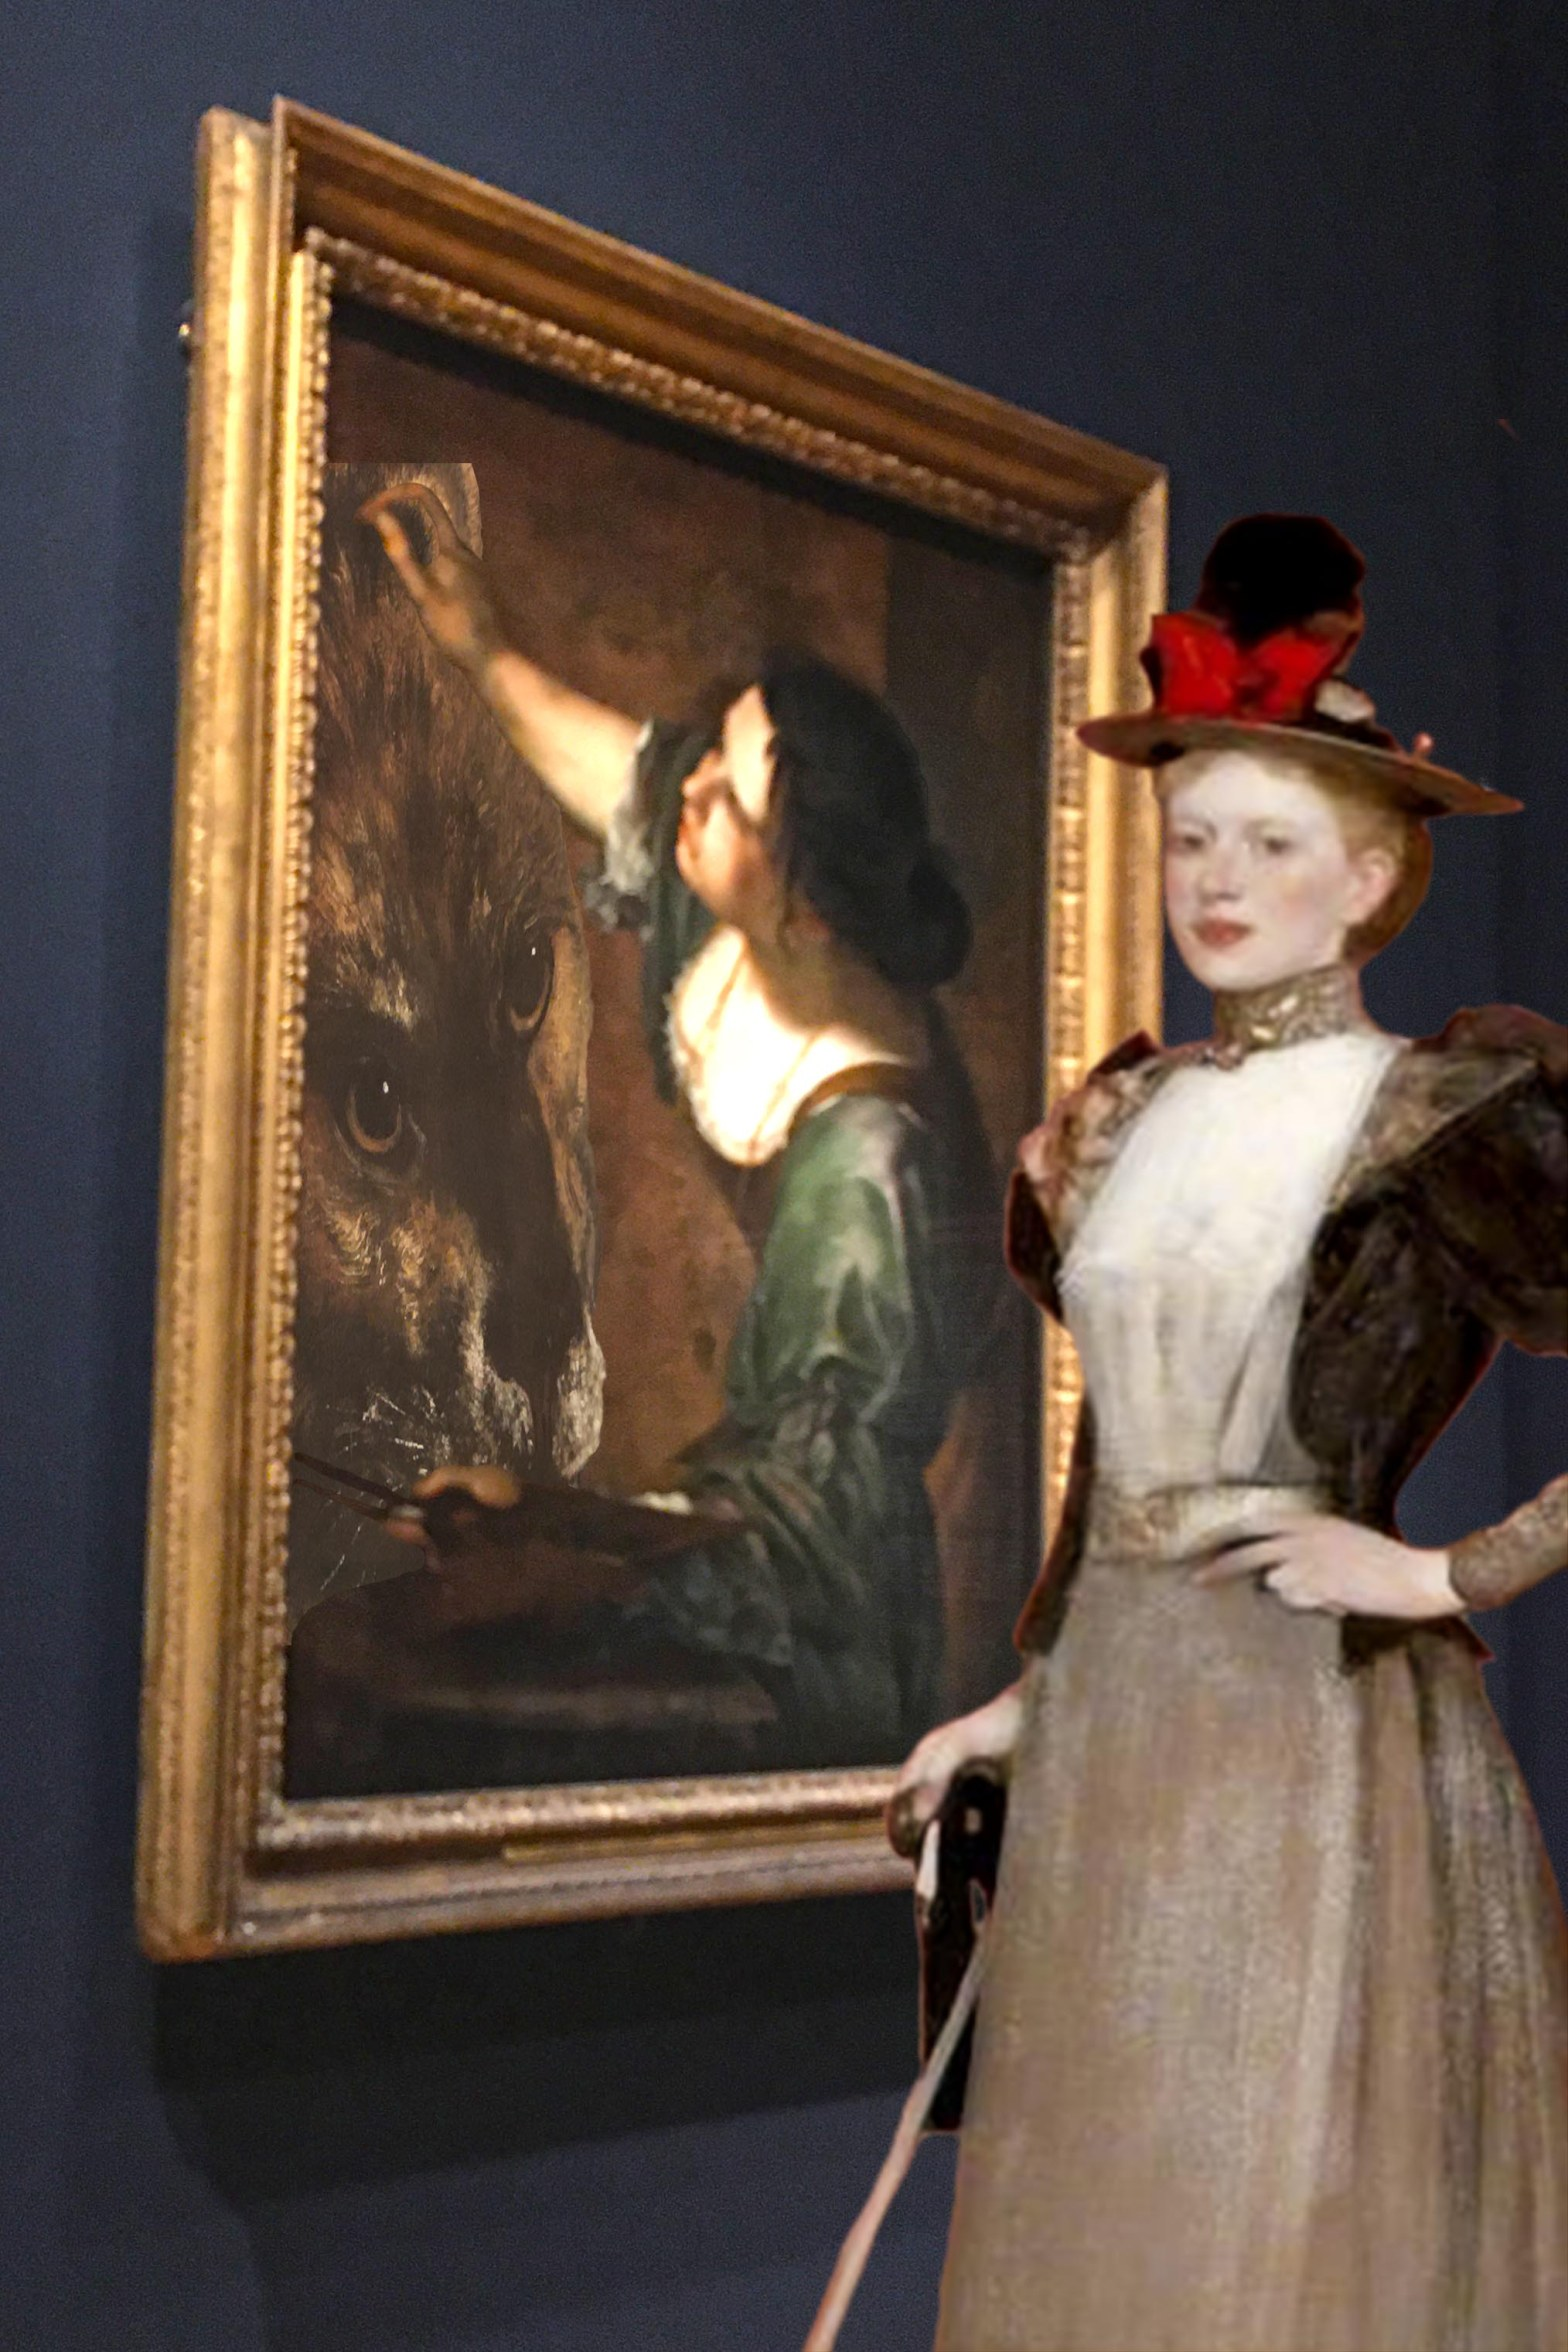 """Photograph taken at the Artemisia show at the National Gallery in London combined with James Guthrie's """"Maggie Hamilton"""" (1892 or 1893)"""